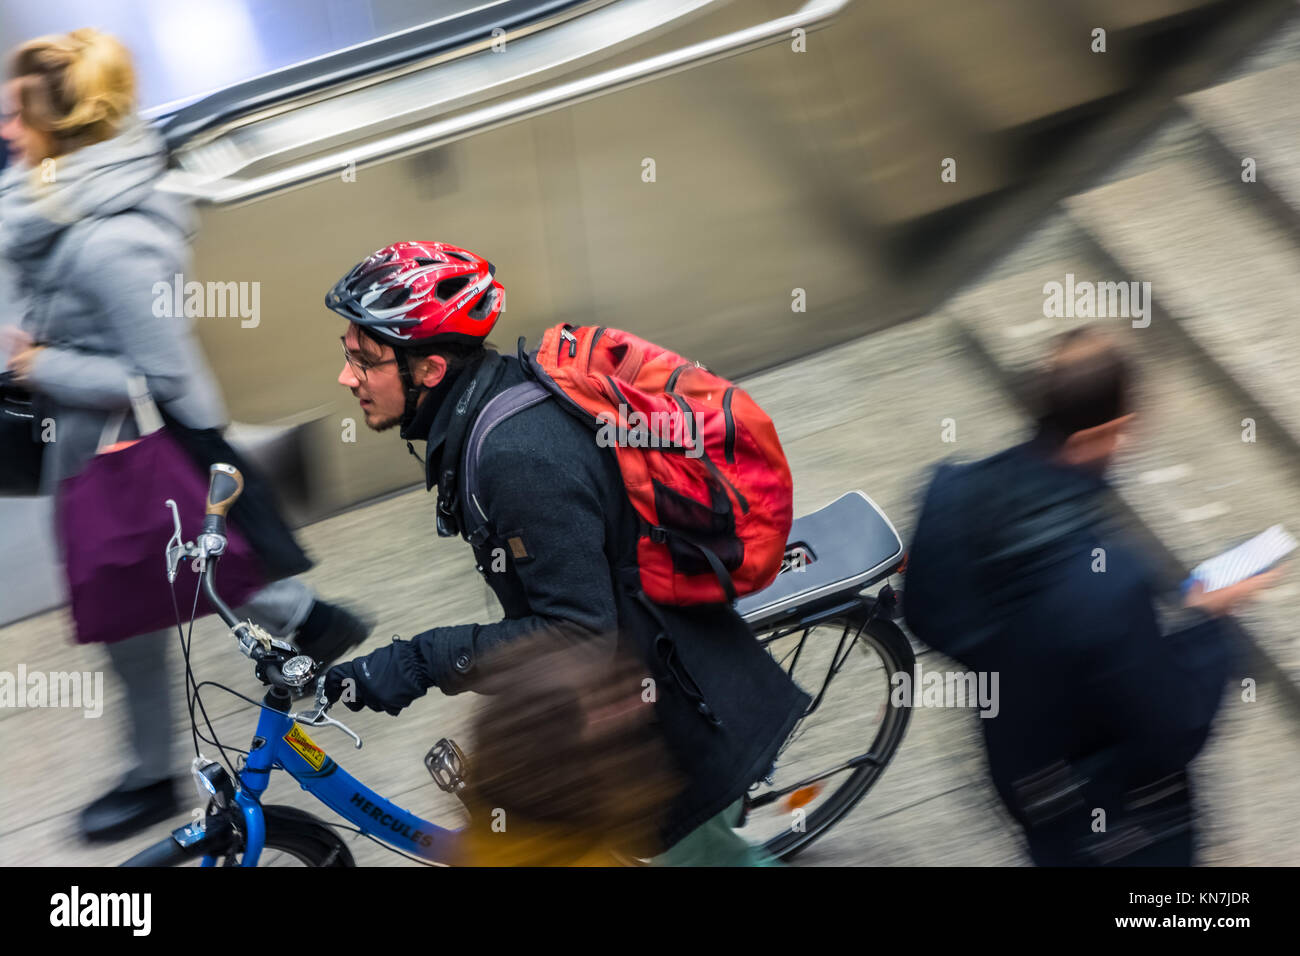 Man Rushing to Train with Bike in German Train Station Public Transportation Etiquette Blurring - Stock Image